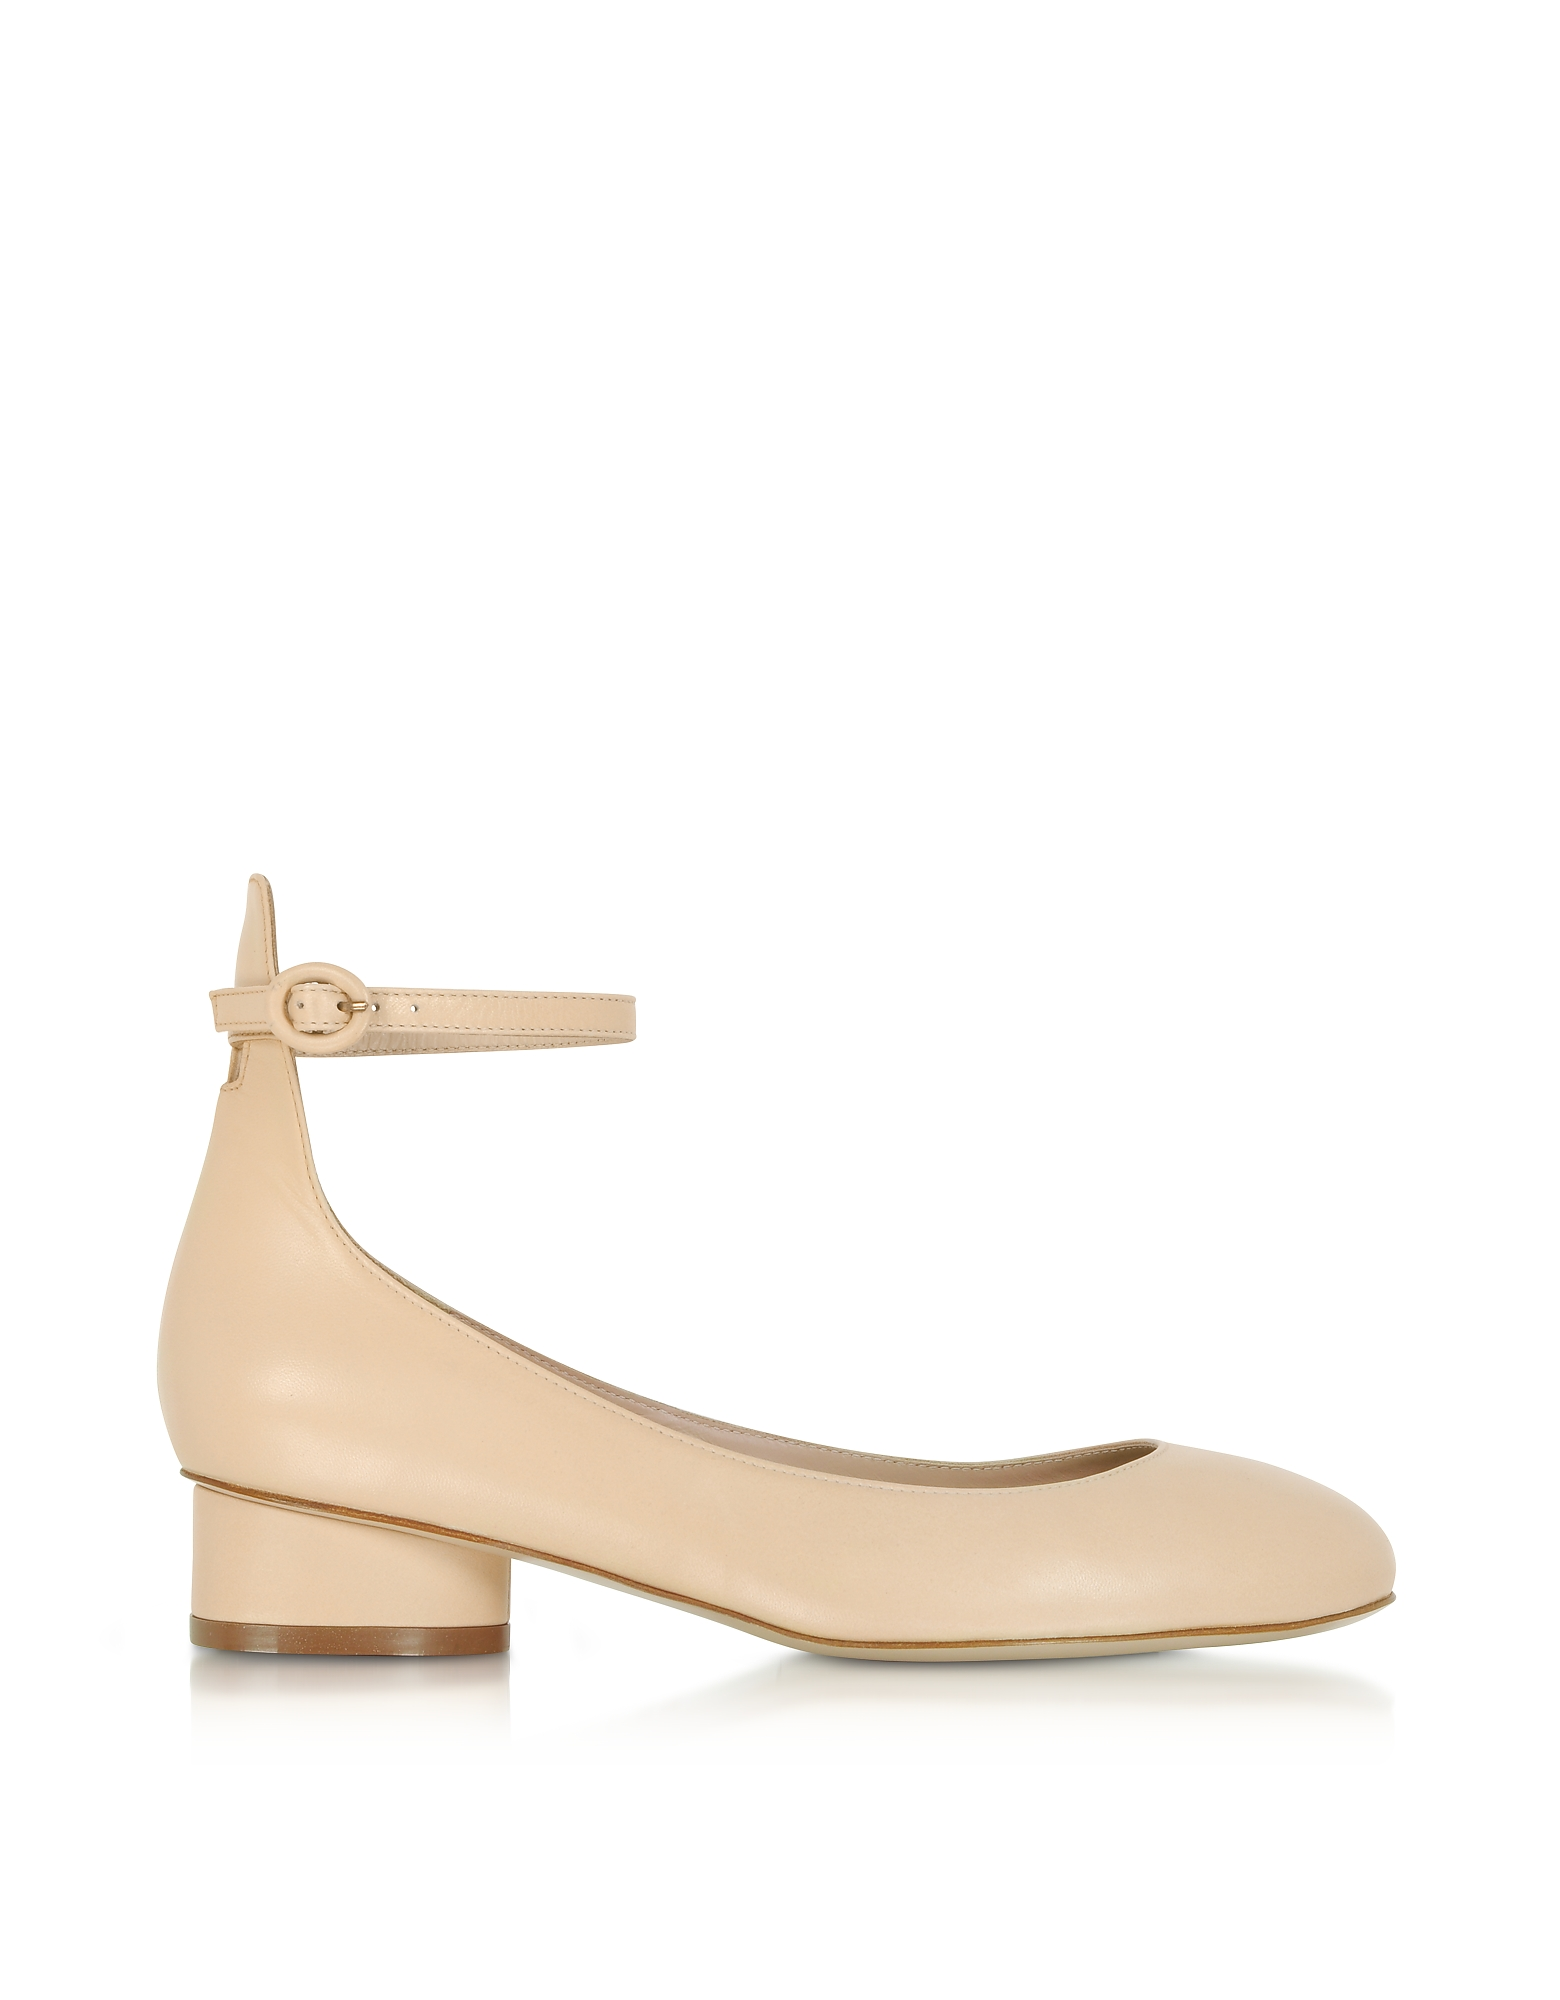 Polly Blush Leather Mid-Heel Pumps